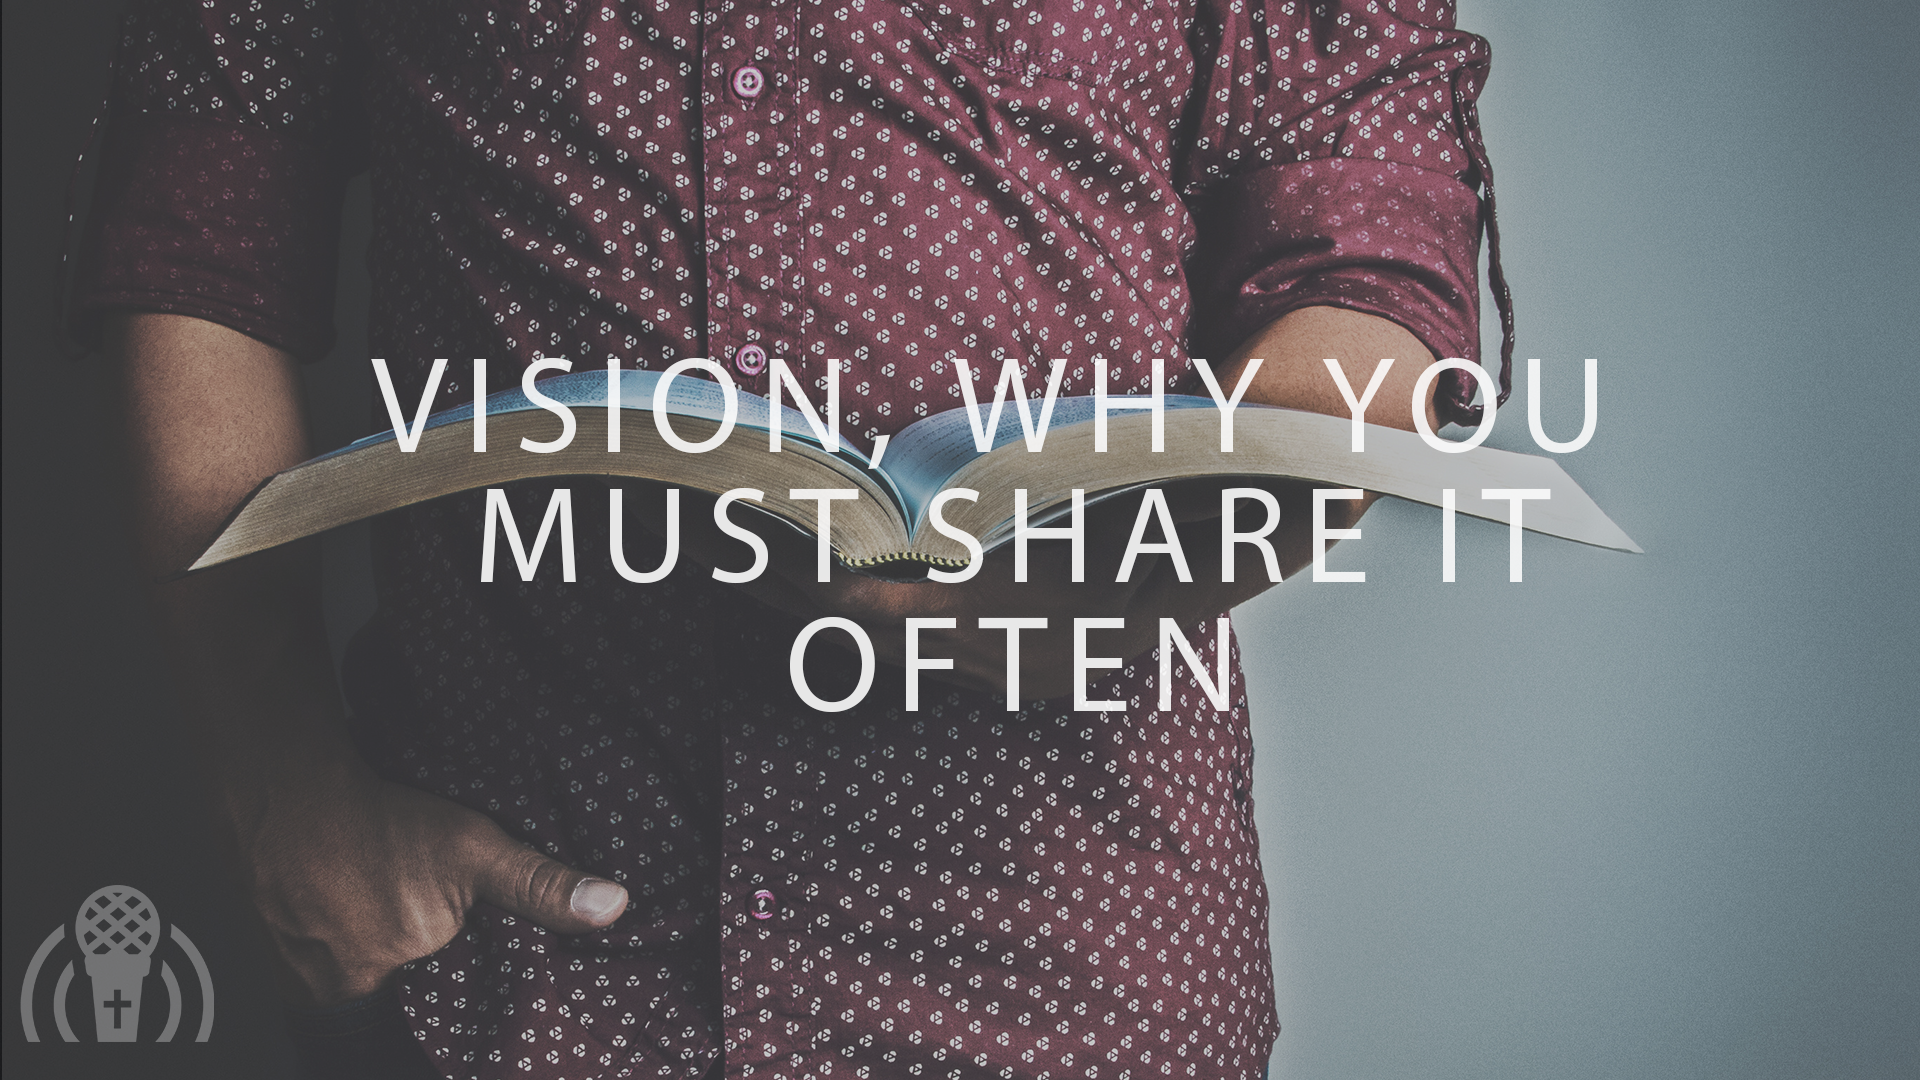 vision_why_you_must_share_it_often.png